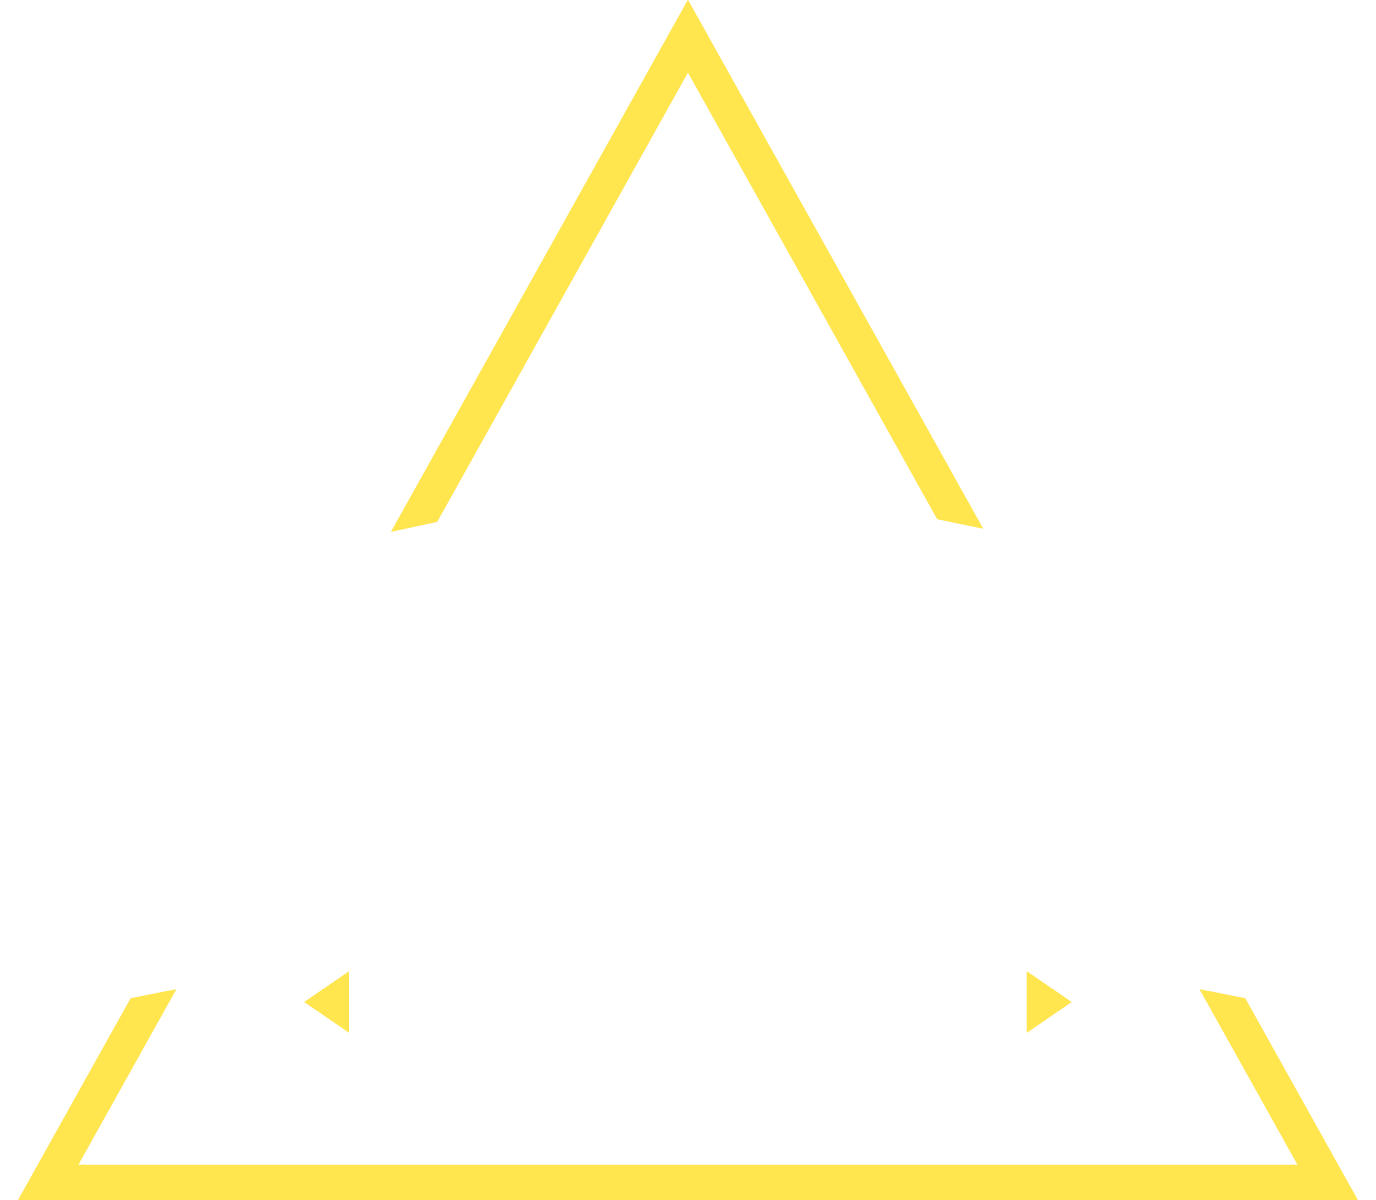 Amy Champagne Events |  CT Connecticut wedding planning and Coordination | New York City NYC Wedding Planner and Coordinators | NYC + Westchester County Wedding Planning and Coordination